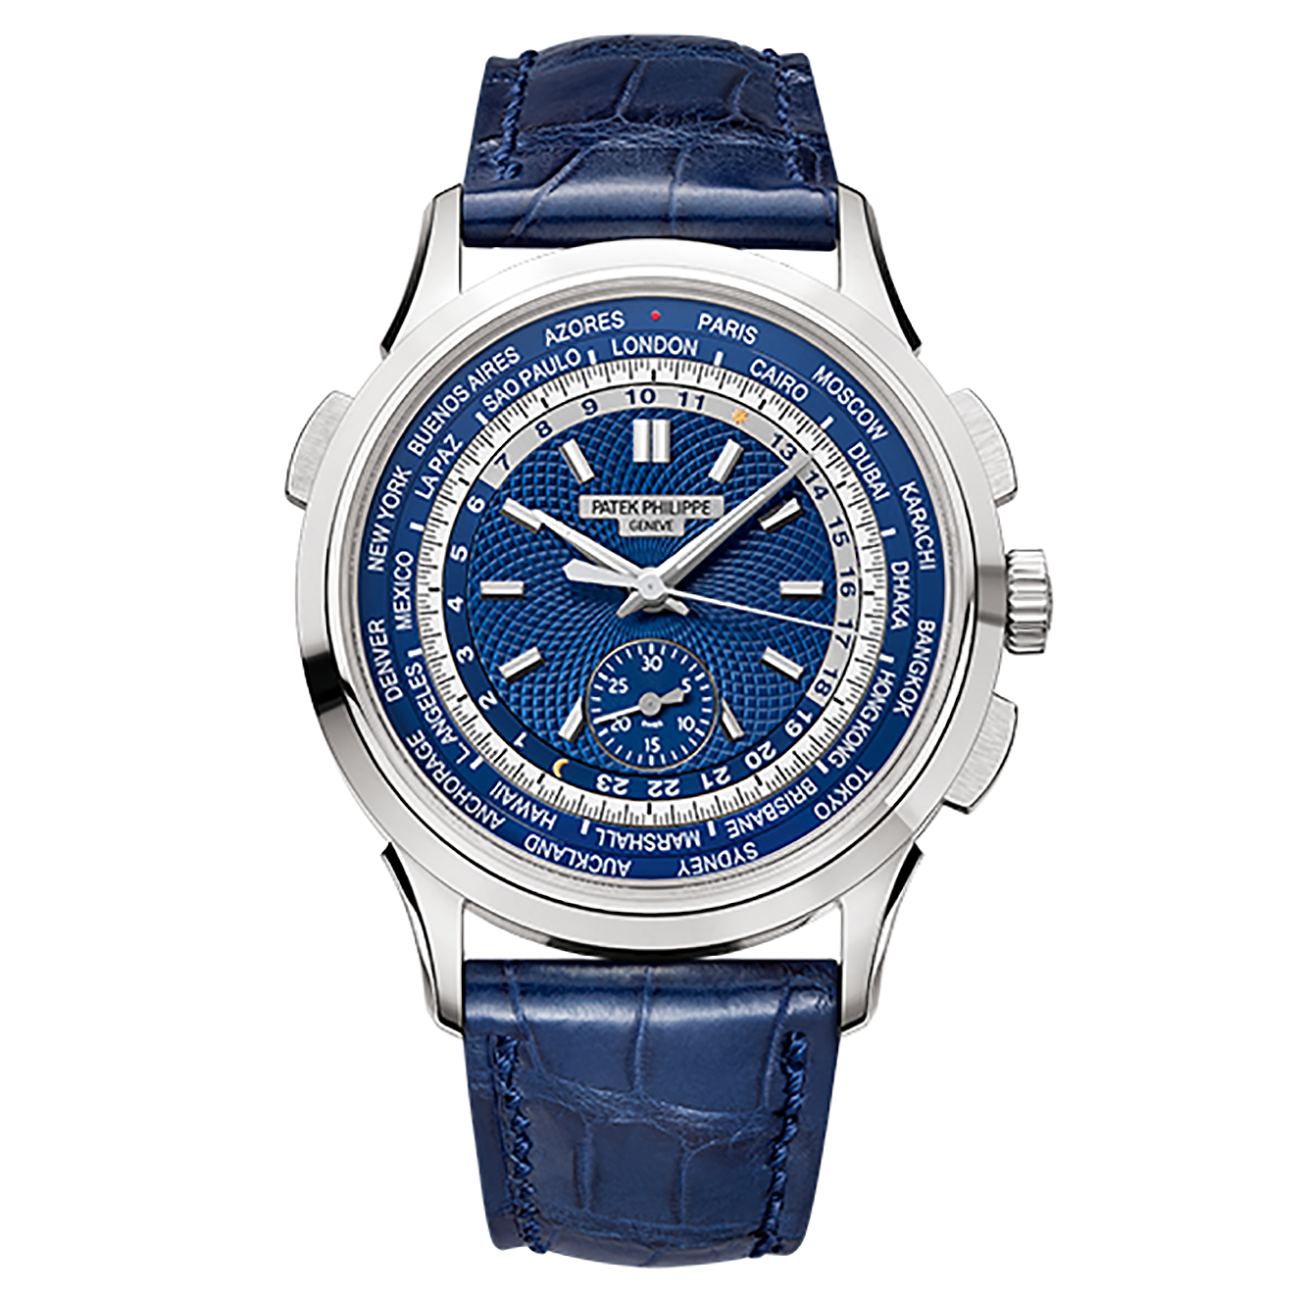 Patek Philippe Complications Blue Dial Automatic 18K White Gold 5930G-001